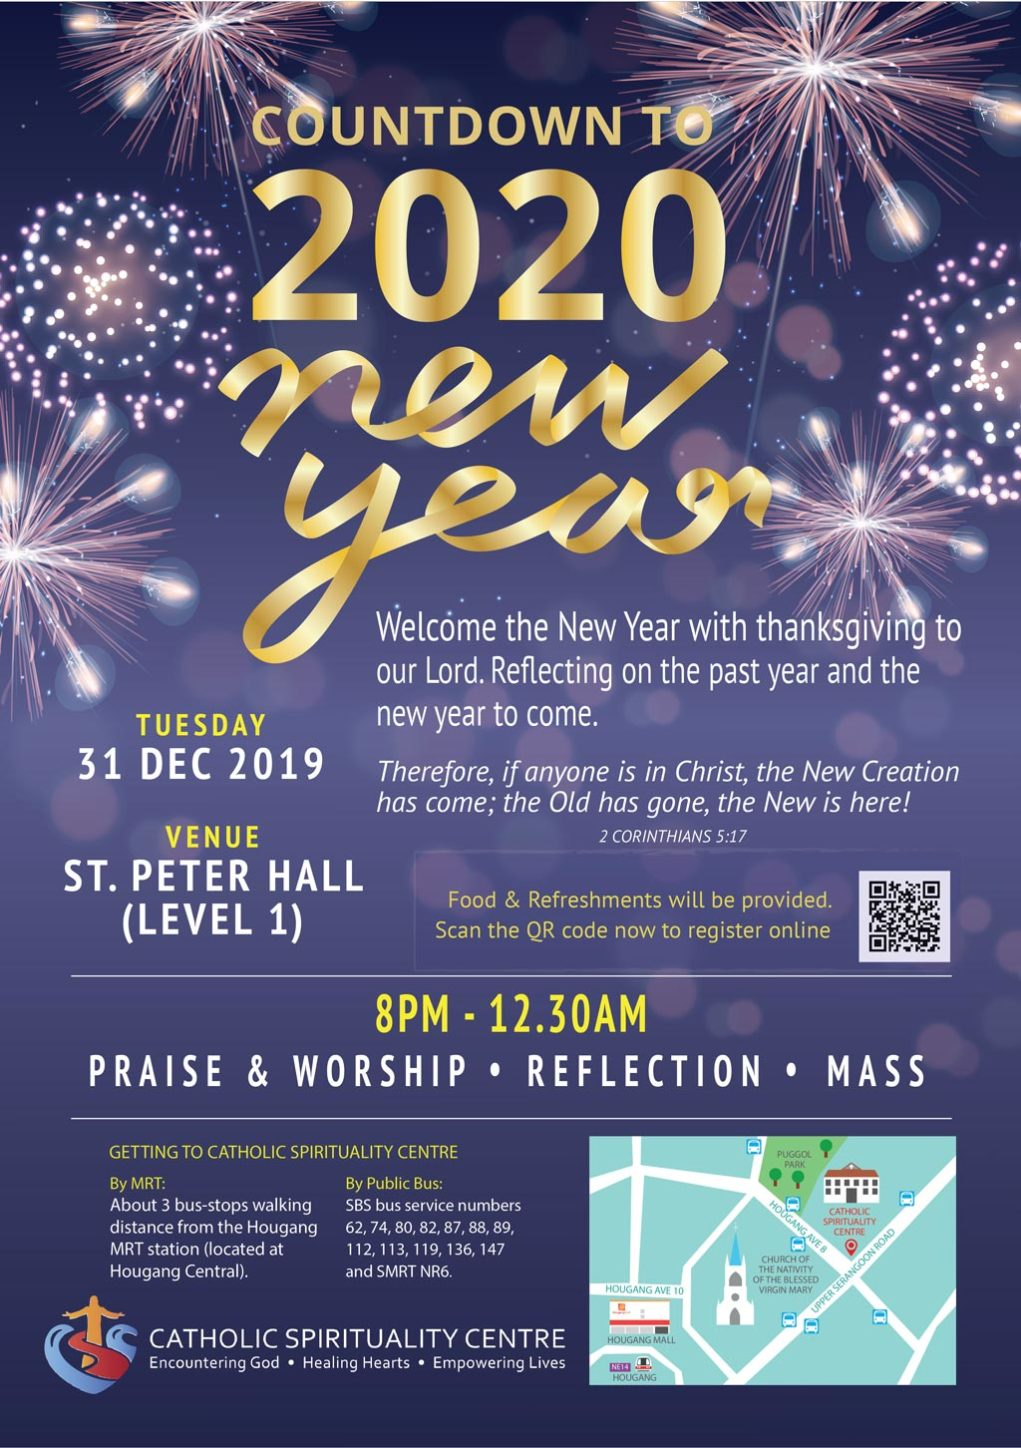 Countdown to 2020 at Catholic Spirituality Centre (CSC) Singapore